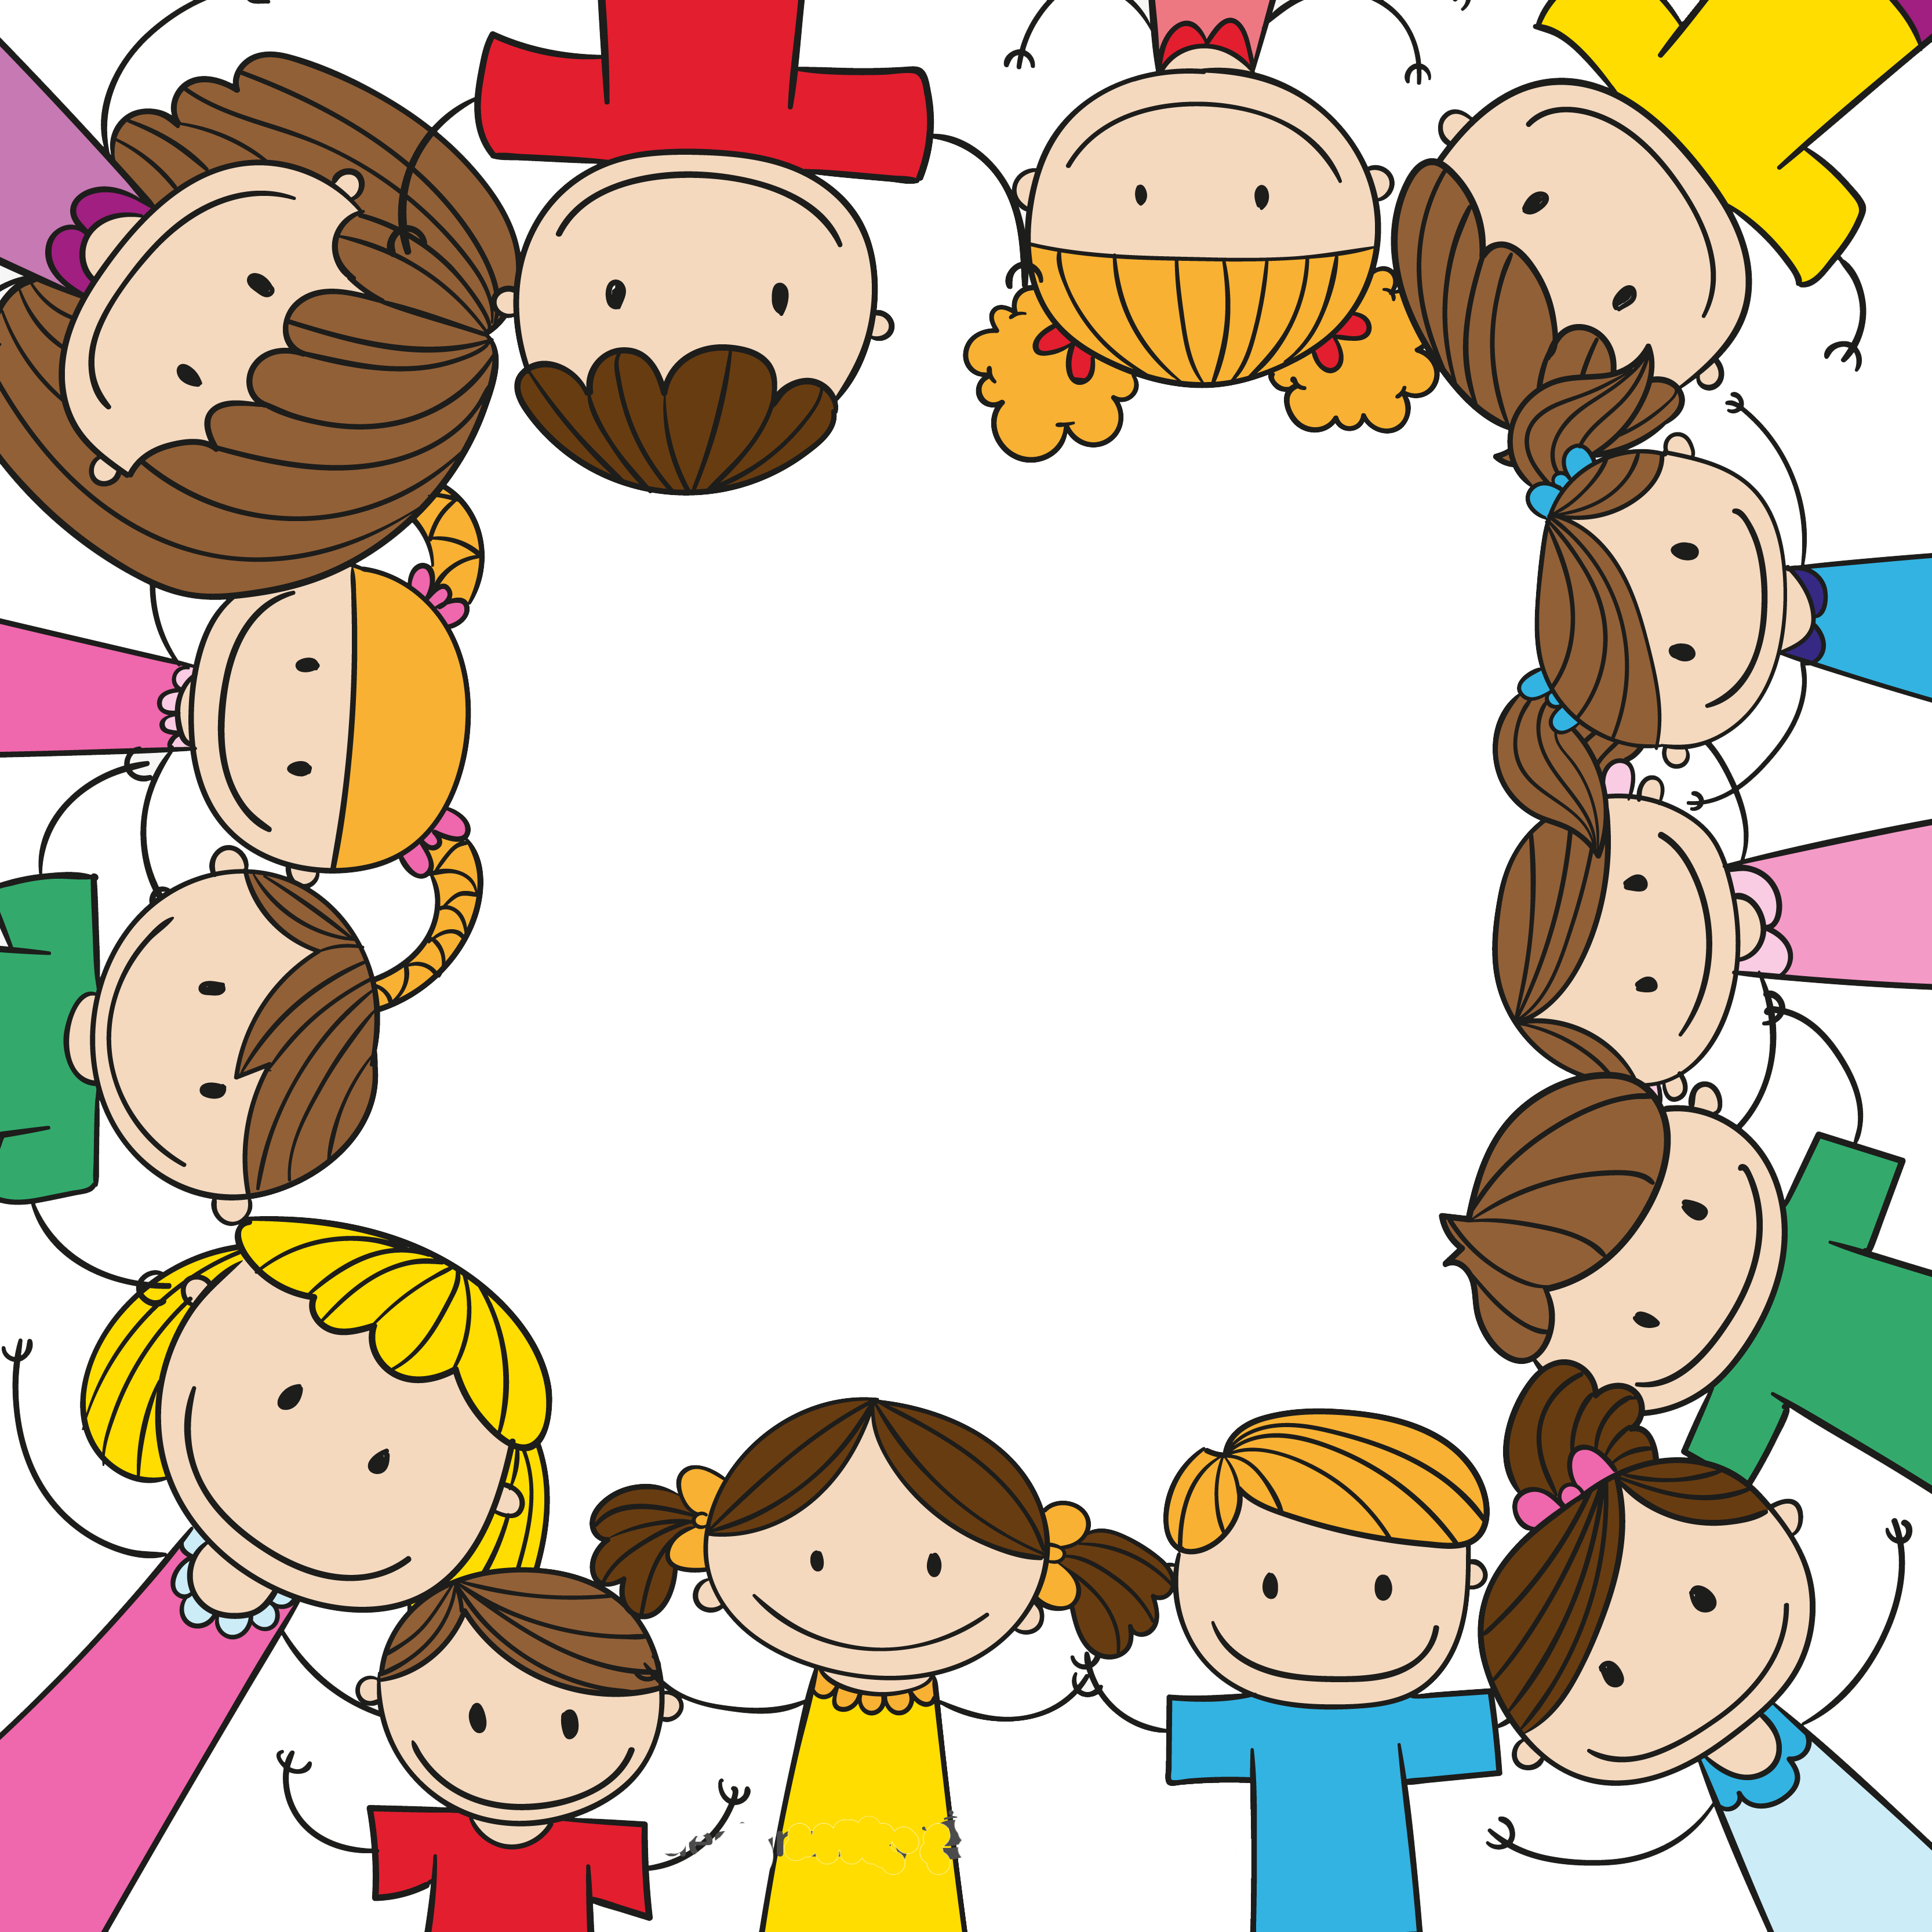 Mom and kid in car clipart clip download Child Play Clip art - Cartoon children holding hands border ... clip download